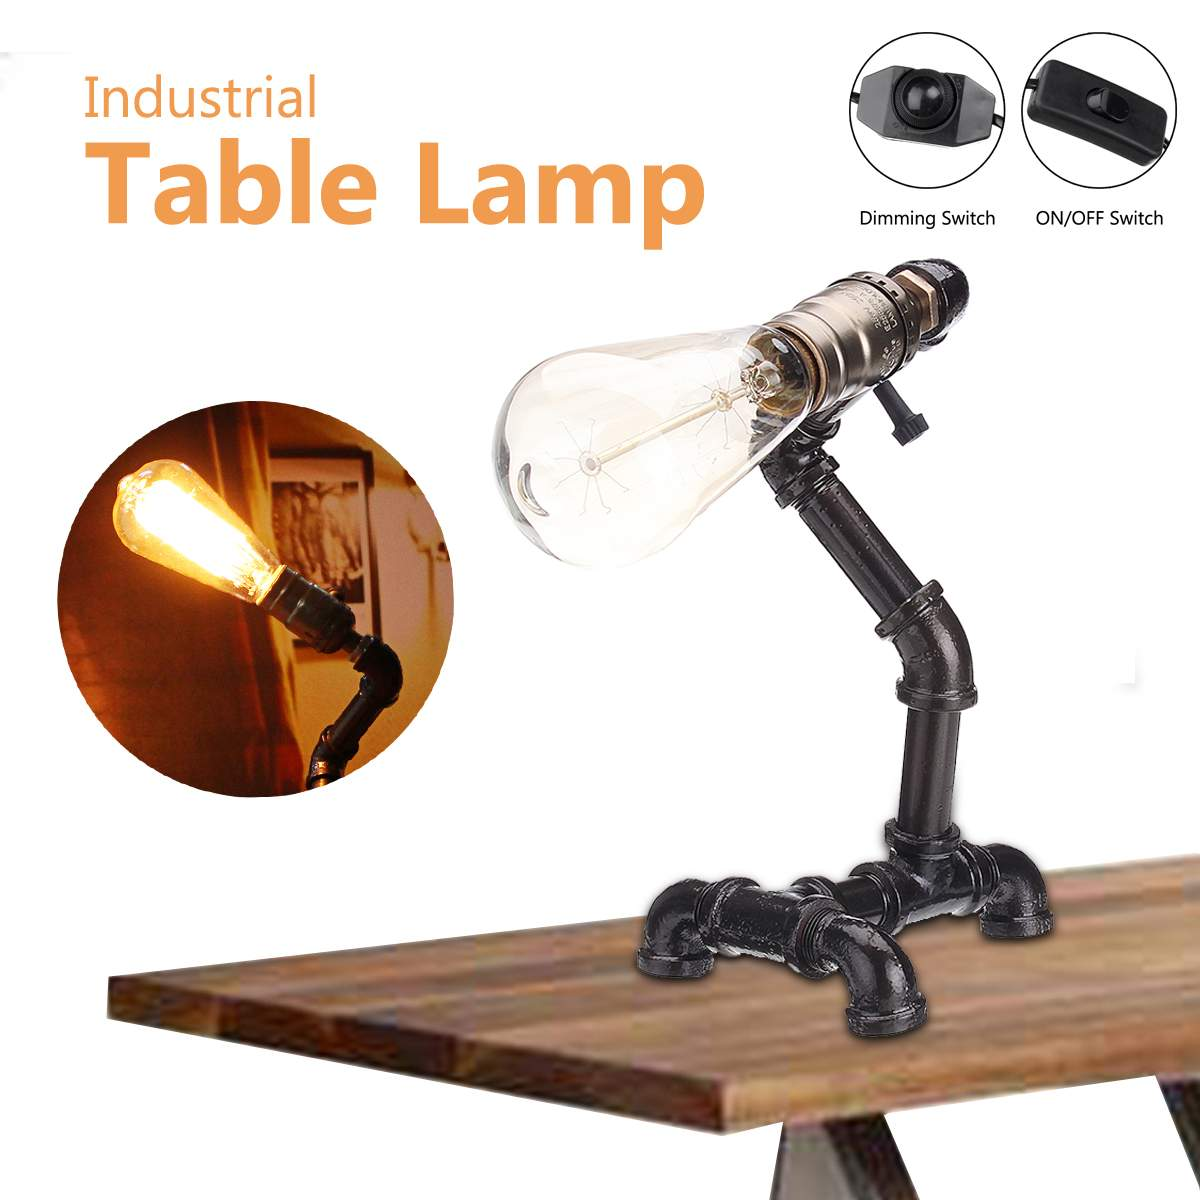 Vintage Industrial Rustic Metal Pipe Desk Lighting Table LED Lamps Dimmer for Bedroom Night Book Reading Study Novelty LightVintage Industrial Rustic Metal Pipe Desk Lighting Table LED Lamps Dimmer for Bedroom Night Book Reading Study Novelty Light